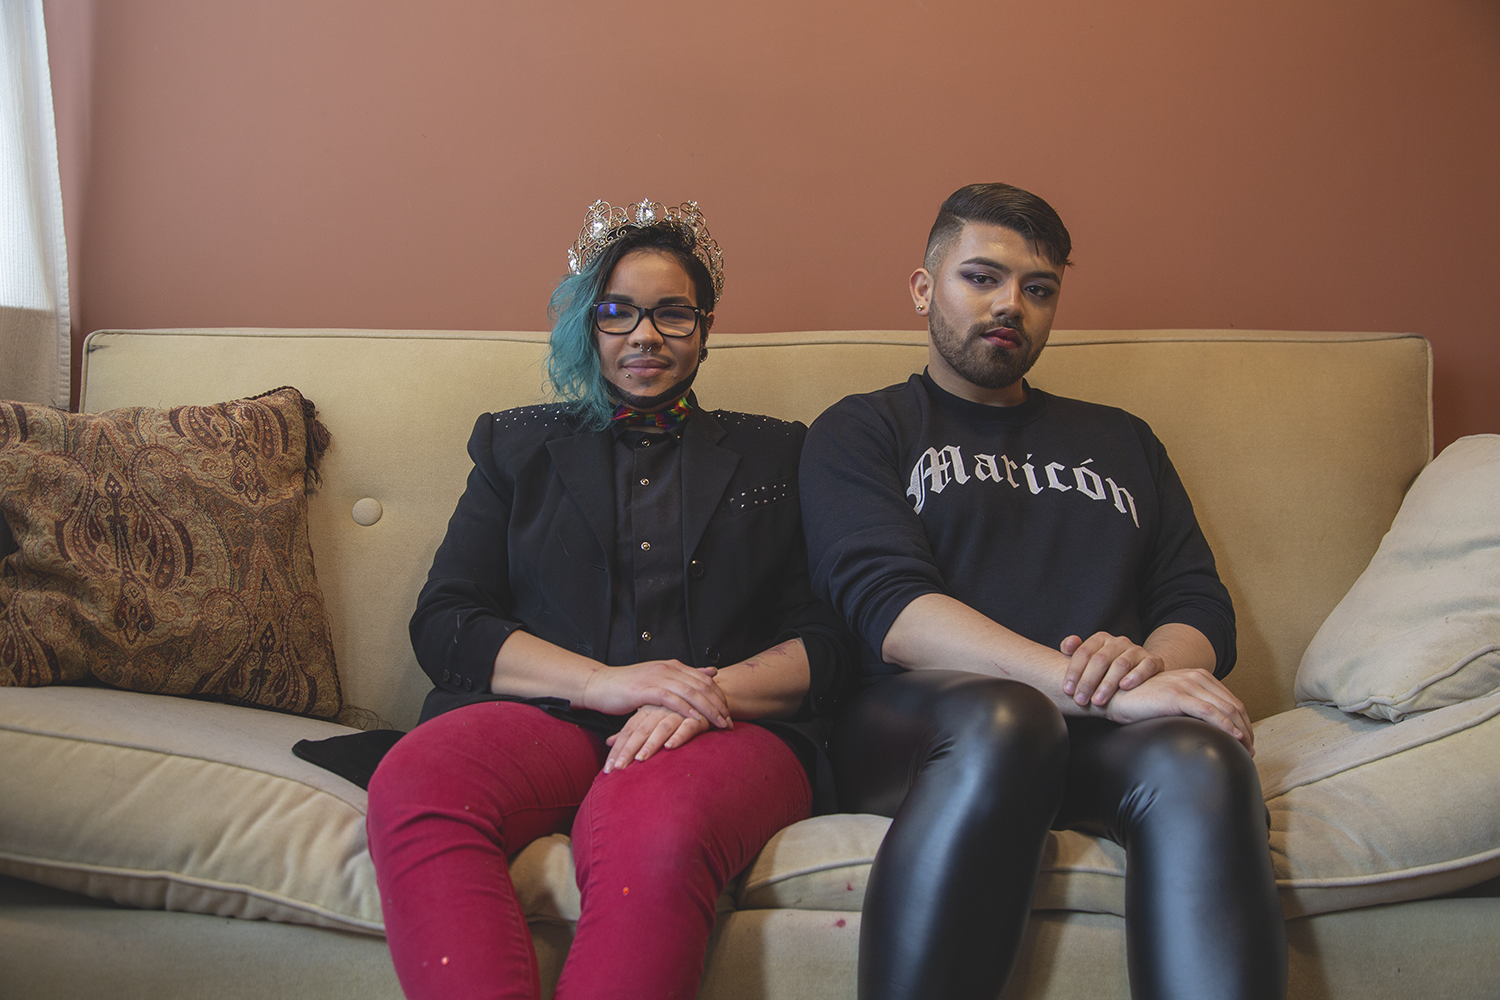 Yadiel Melendéz sits on a next to their friend, Pablo Ventura in their home on February 8th, 2019.  Segunda Familia  is a 3-portrait project that demonstrates Queer people with their chosen family. As queer people, our families aren't always supportive of us, so we search for family figures in our communities.